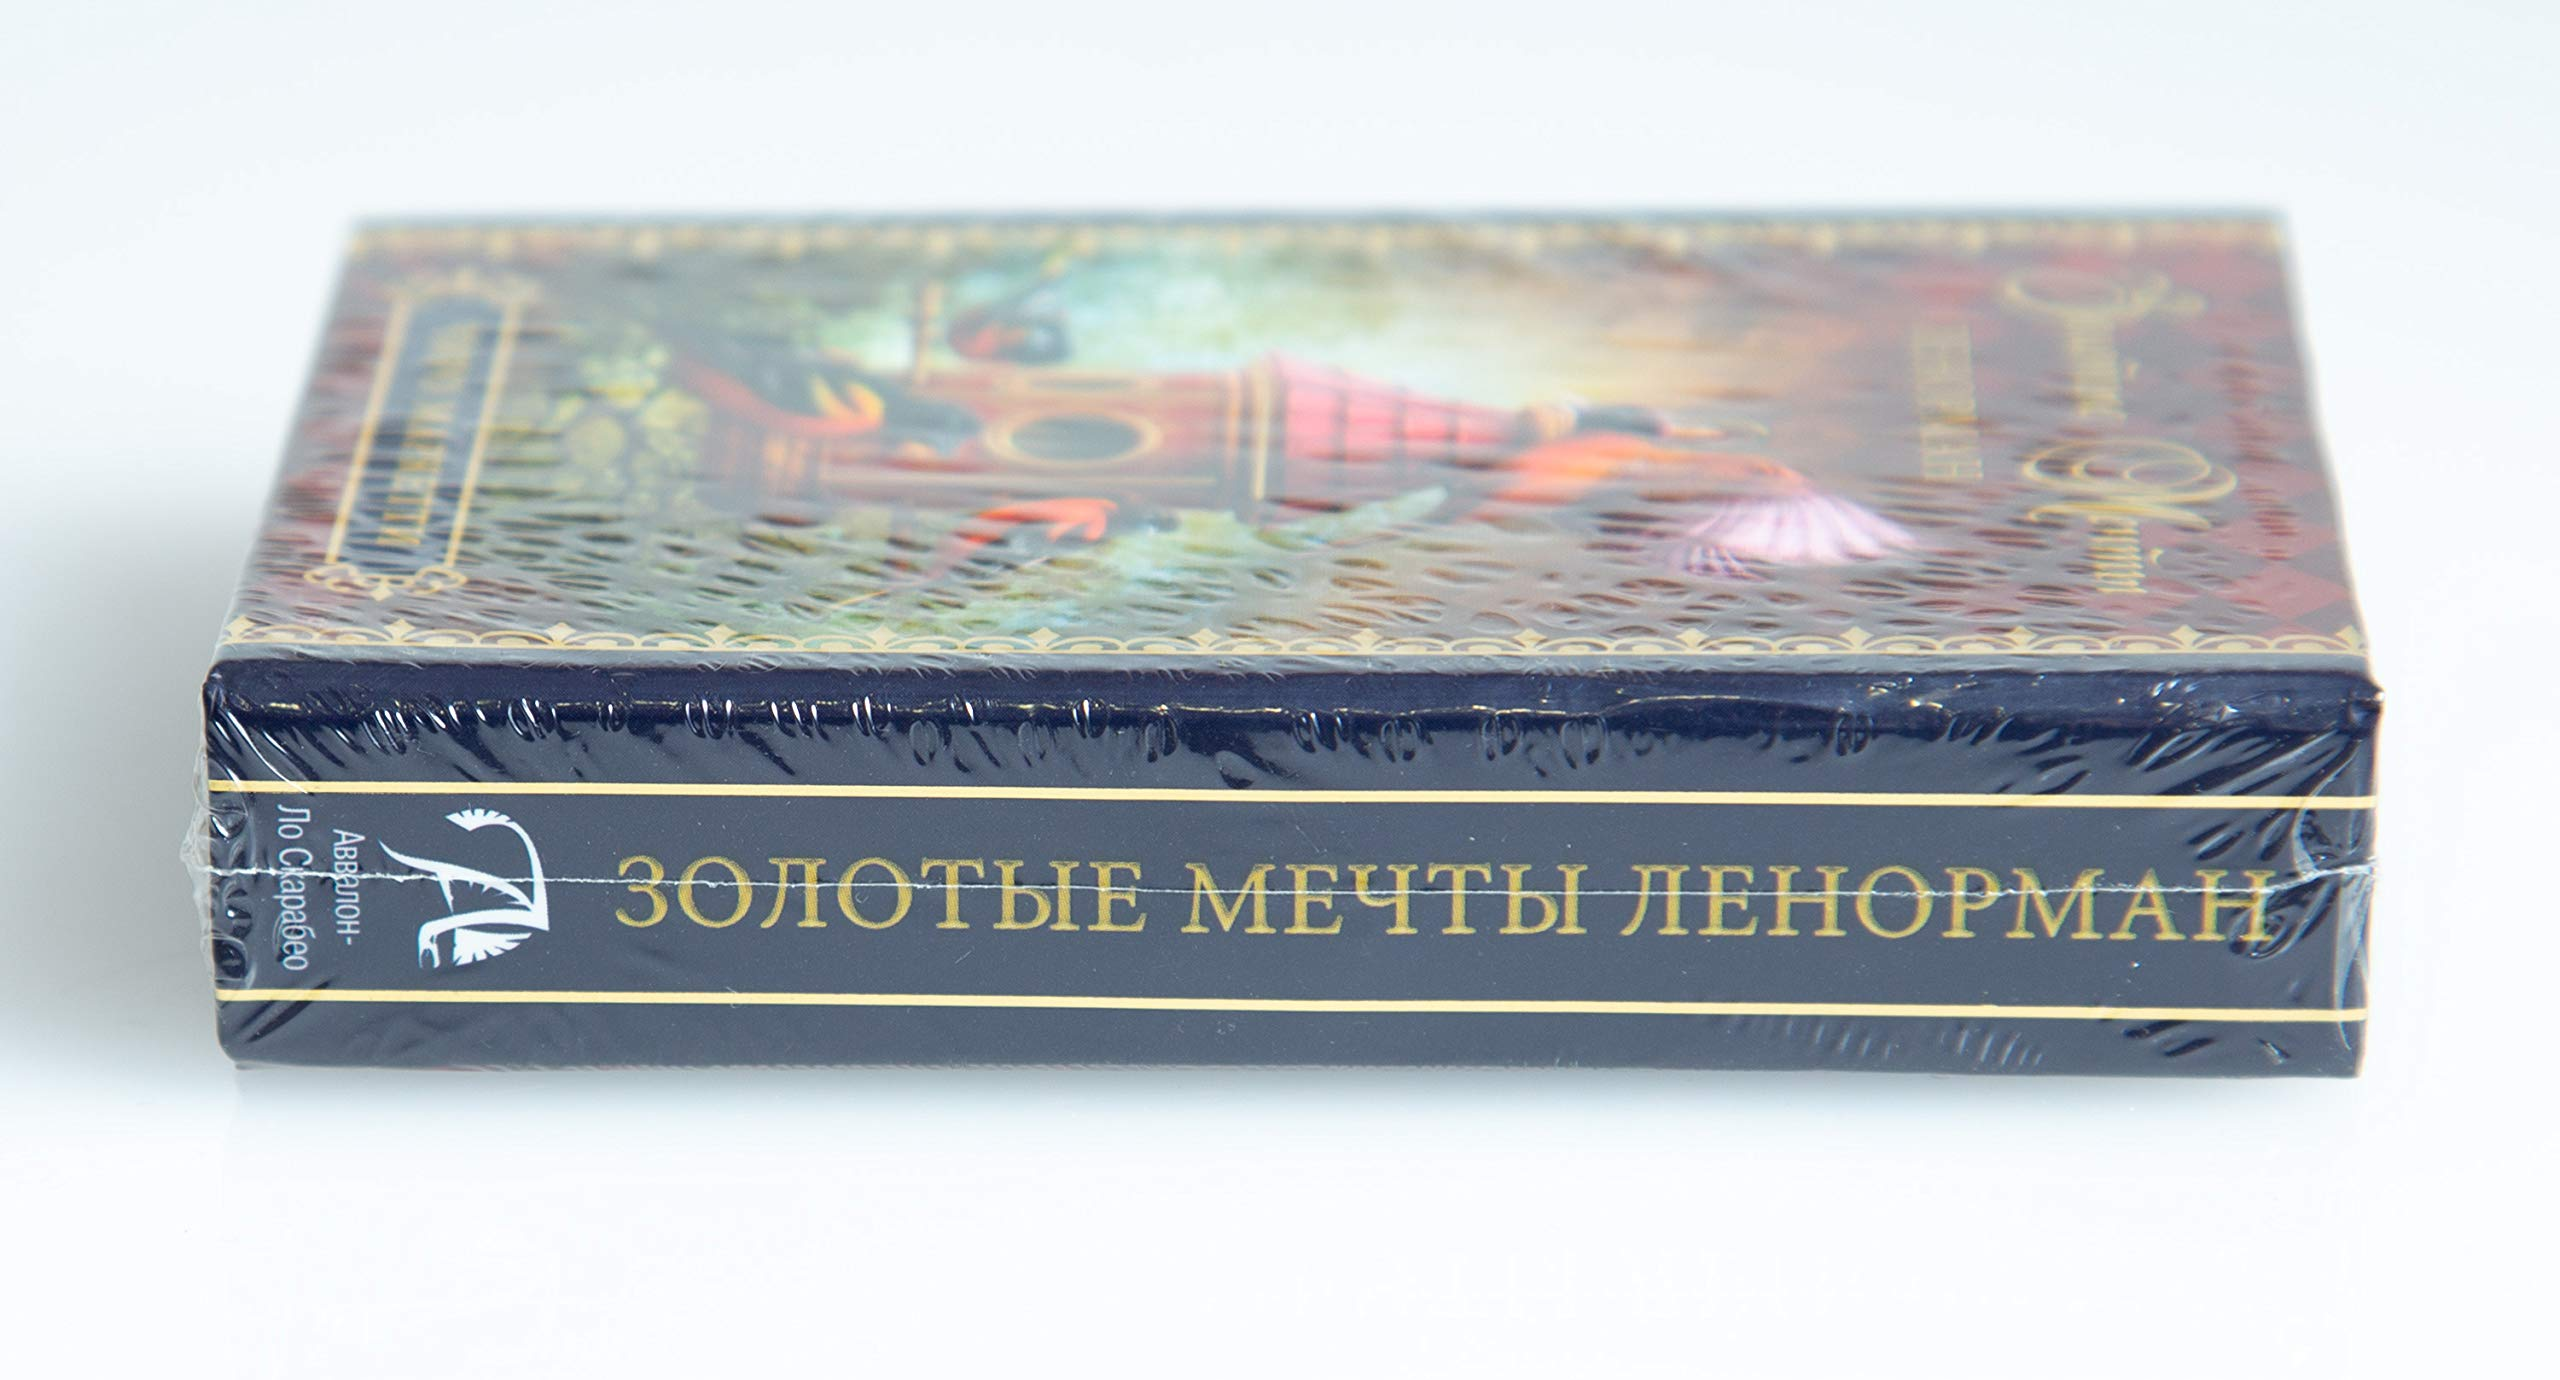 Gilded Reverie Lenormand by Chiro Marchetti 36 Tarot Card Deck Russian Edition (with Gold Trim) by Avvalon, Russia (Image #6)